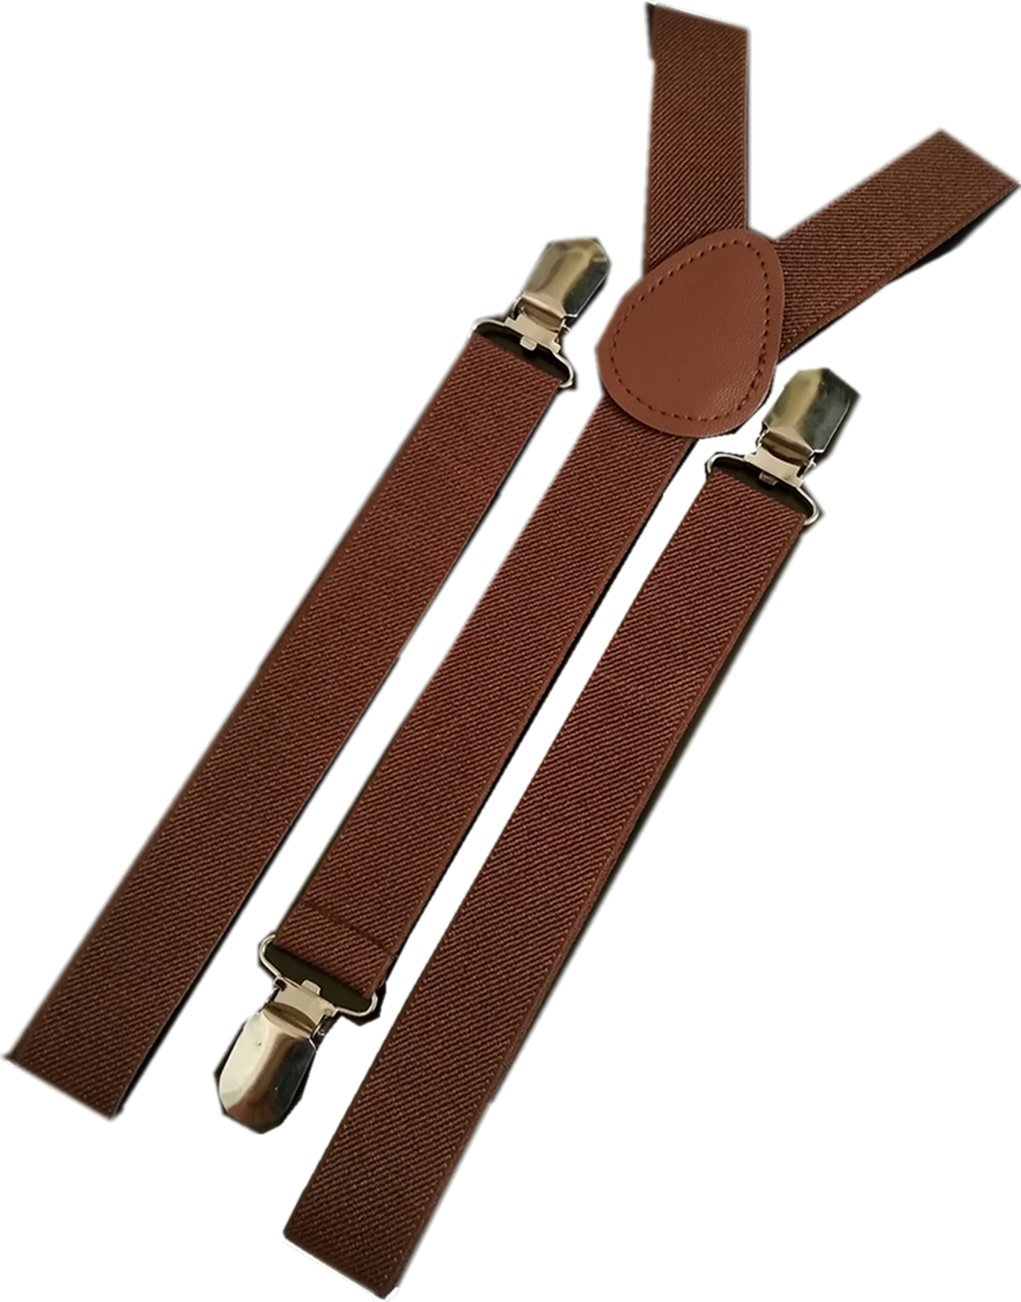 YUNEE Gentlemen Suspenders Solid Color Metal Clips Adjustable Elastic Shoulder Straps Trouser Braces (brown)